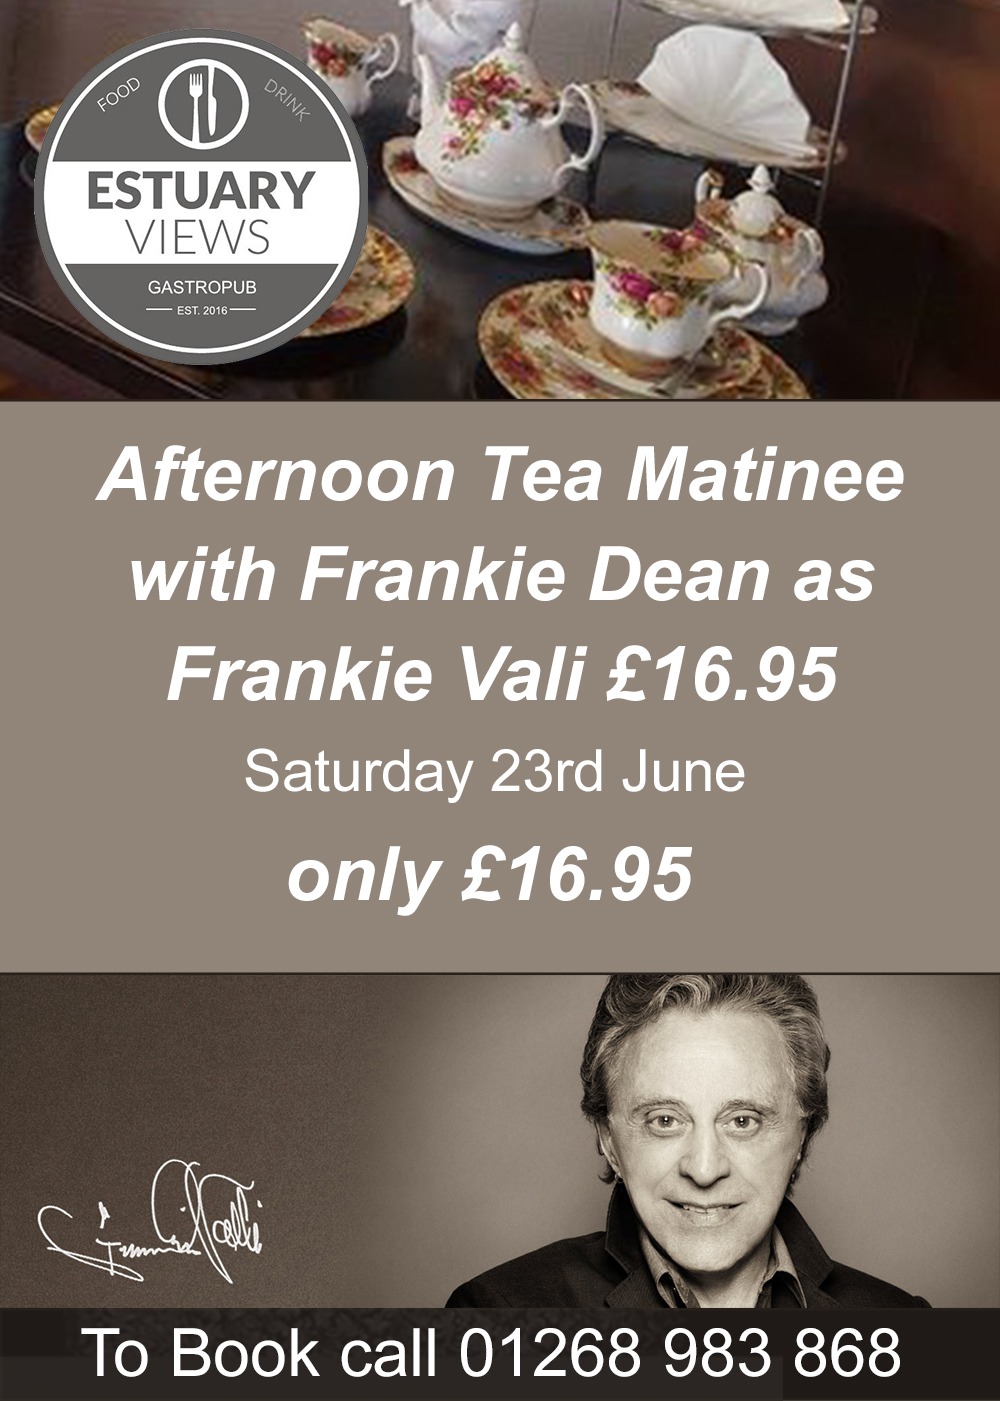 Afternoon Tea Matinee with Frankie Dean as Frankie Valli